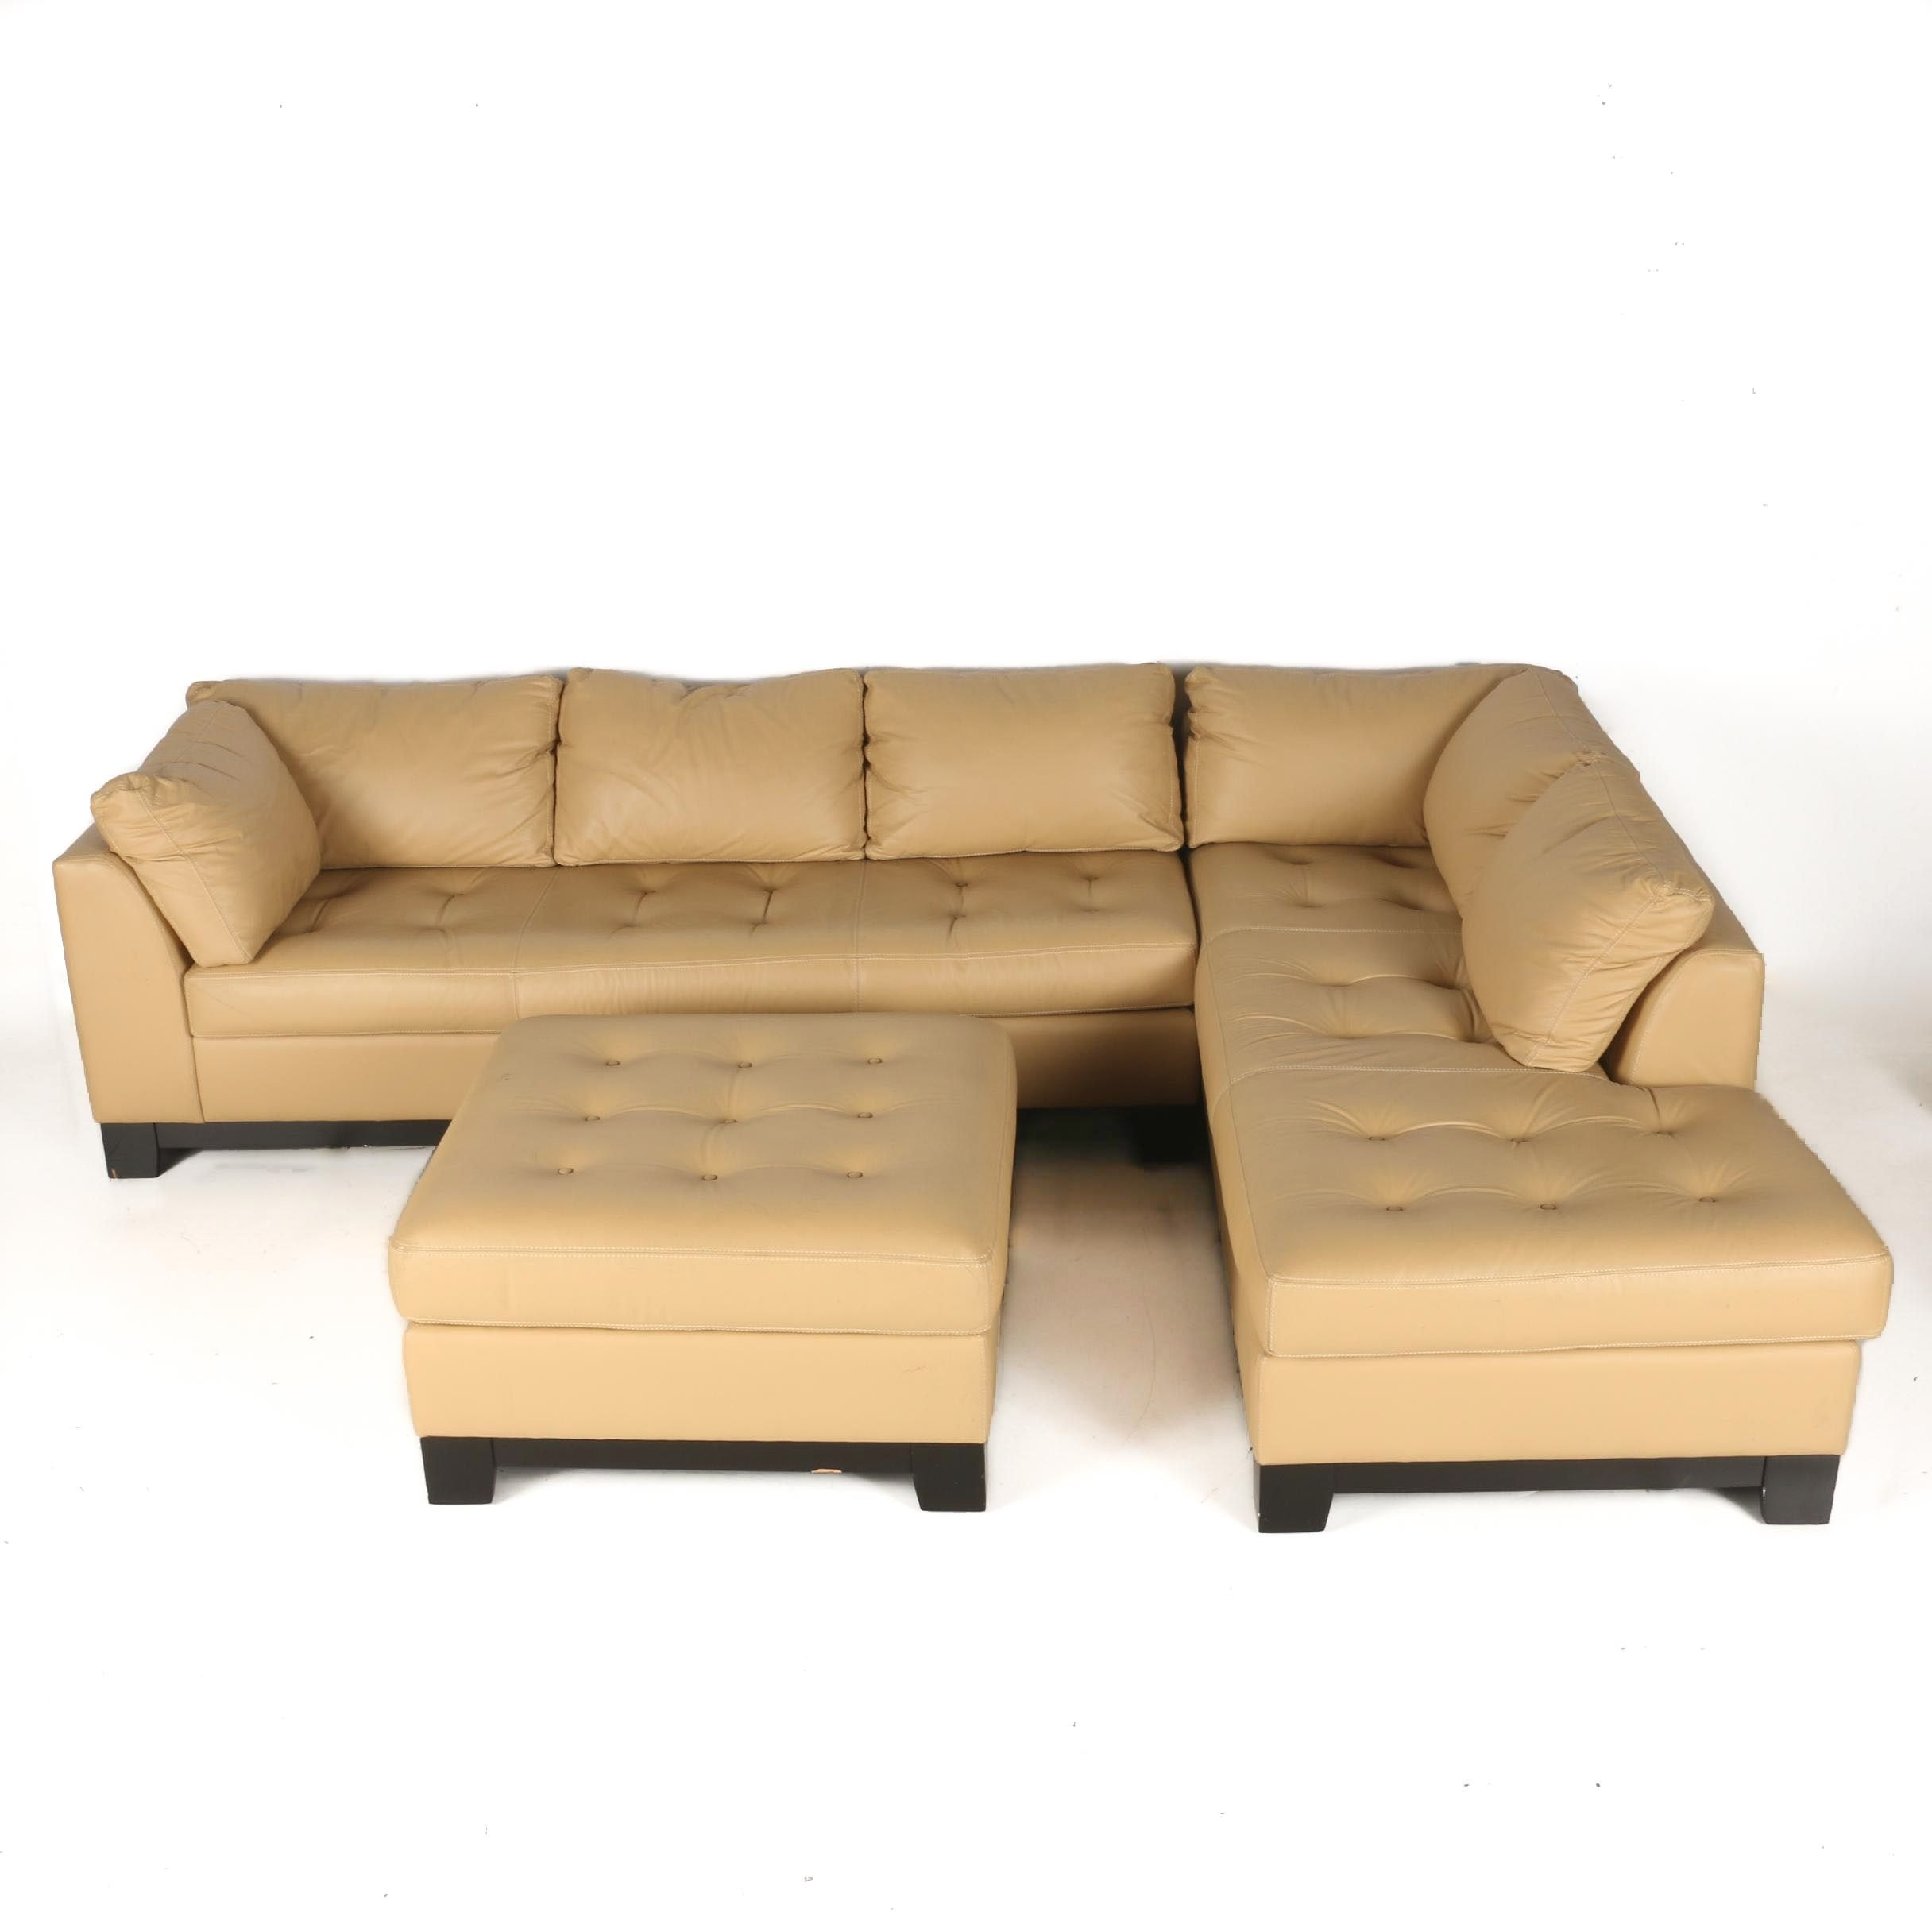 Elite Leather Sectional Sofa And Ottoman ...